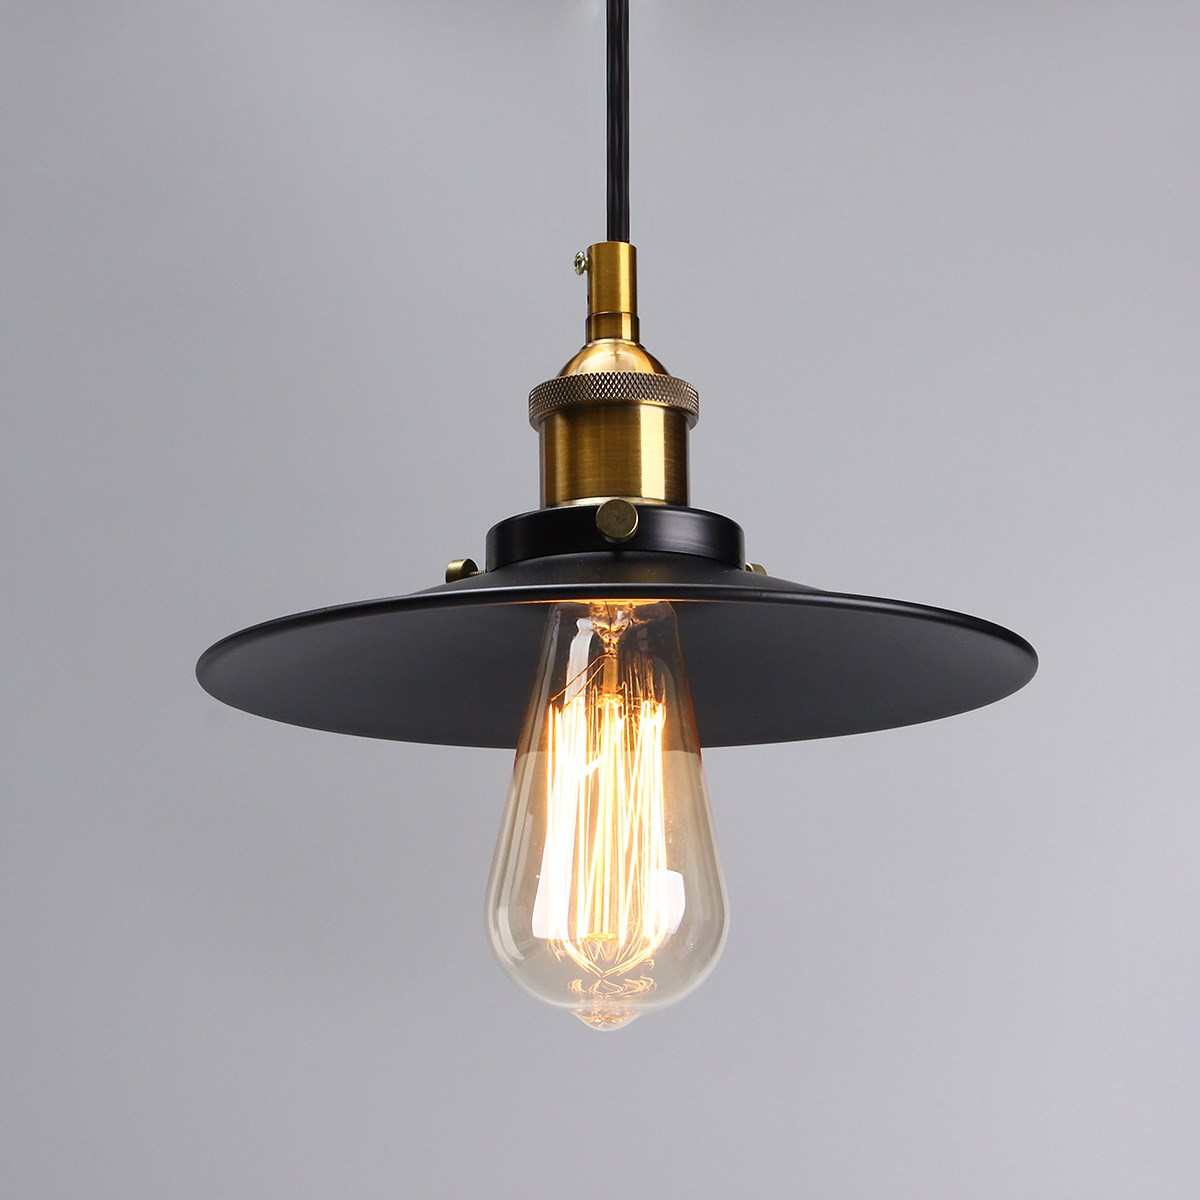 pendant white pottery marvelous fan ceiling and for on chandeliers silver cover kids extraordinary light bedrooms barn attached buttom bedroom chandelier iton lamp with